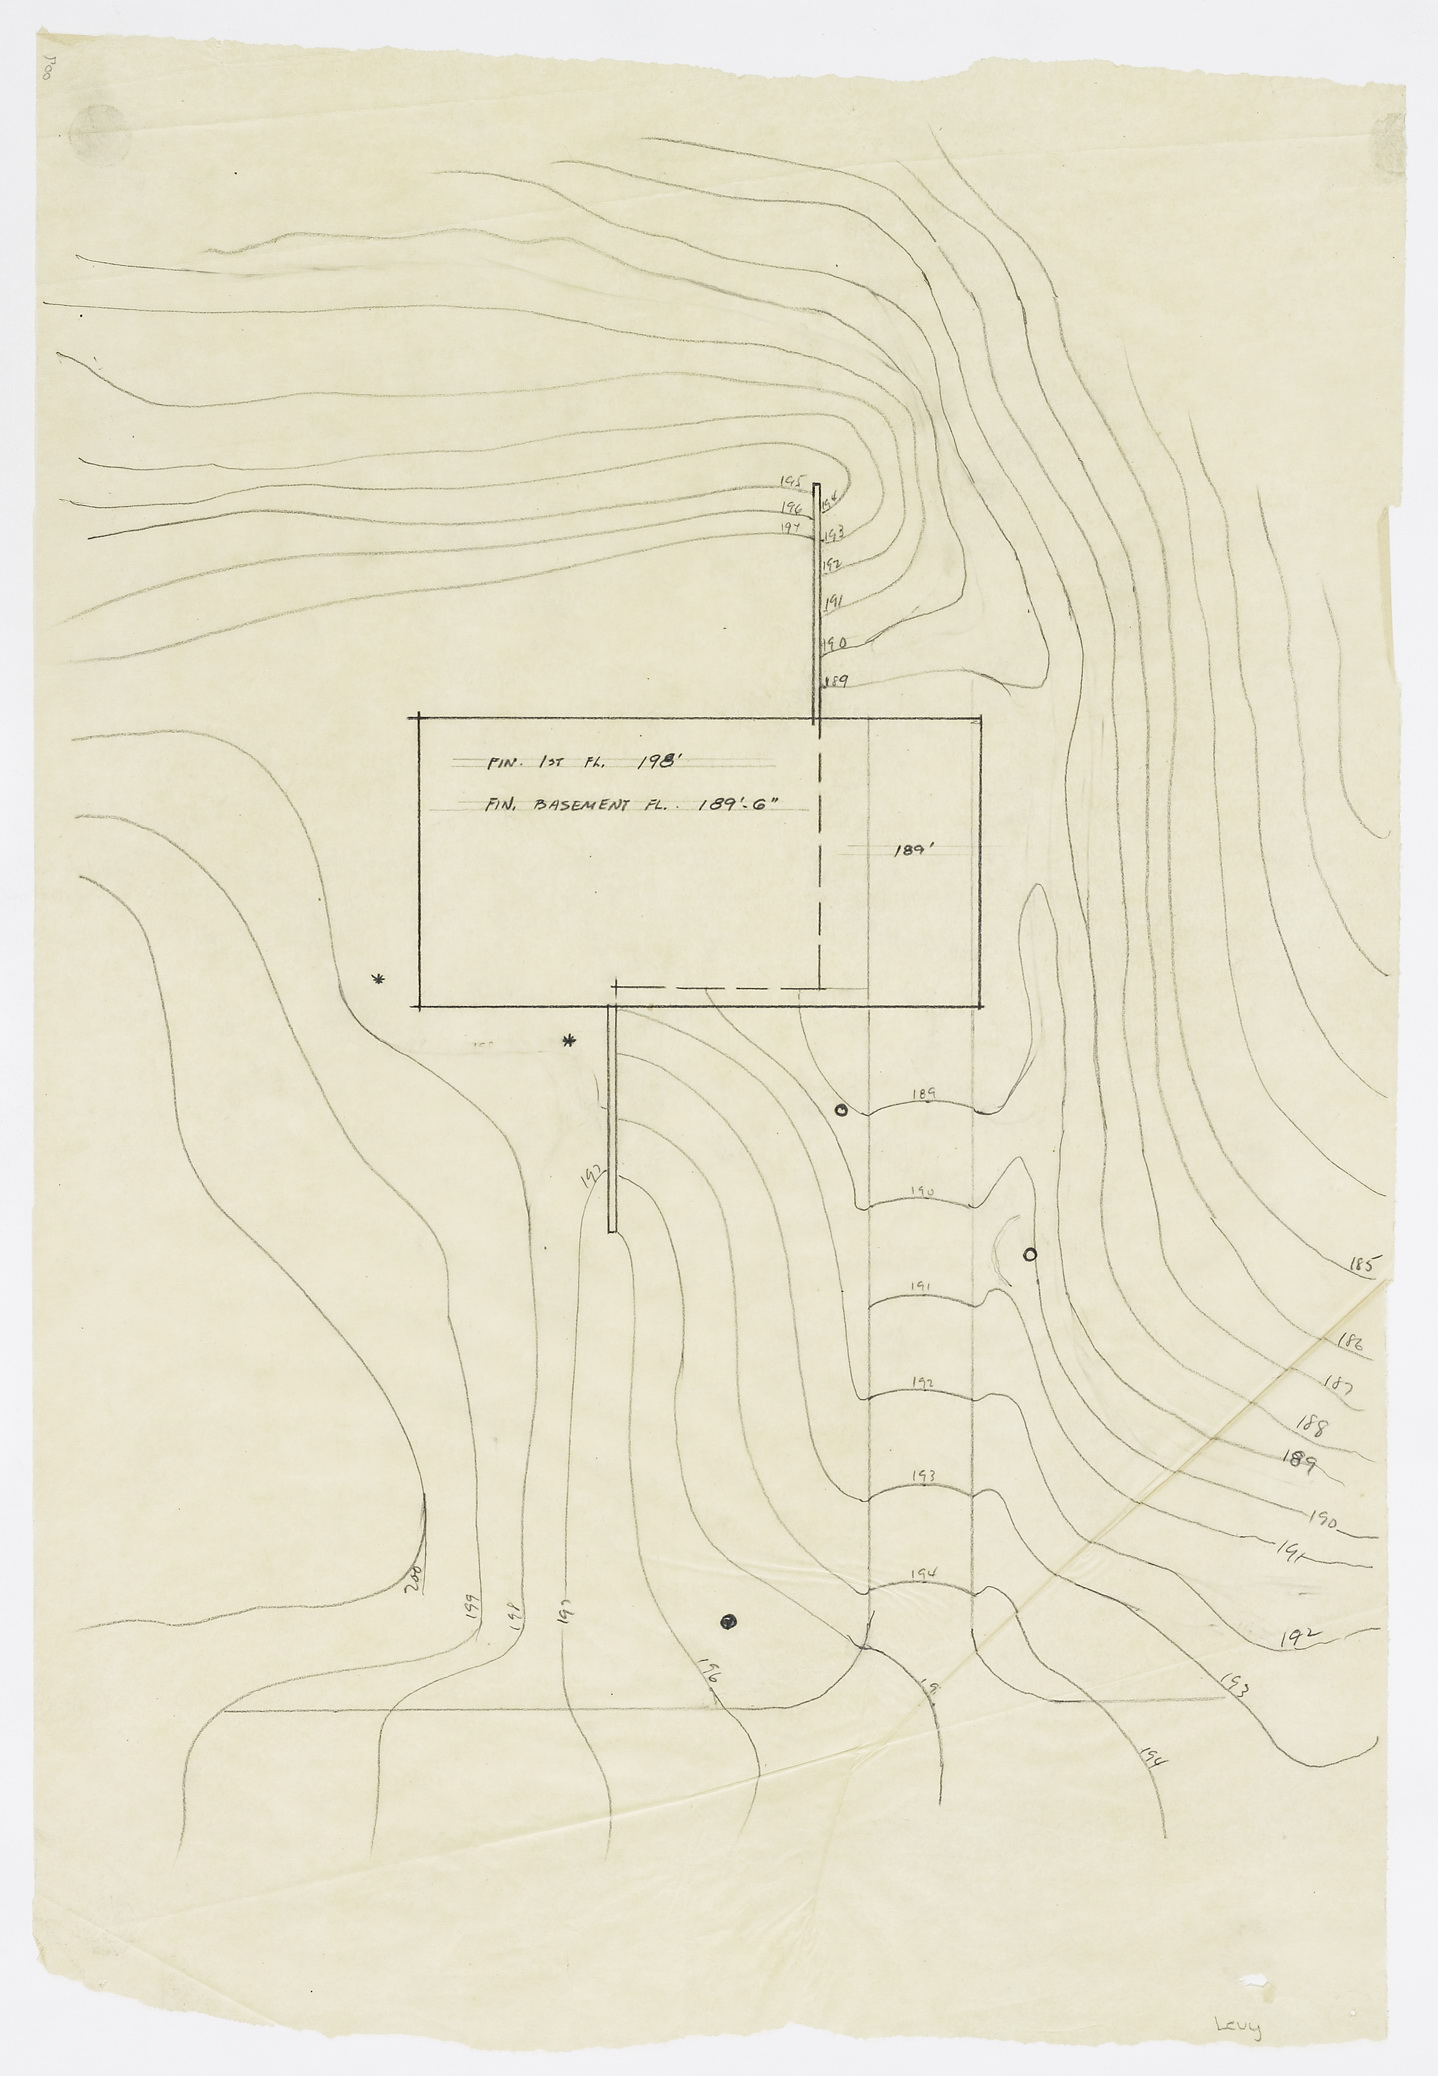 Click to select: Site Plan Showing Contour Lines